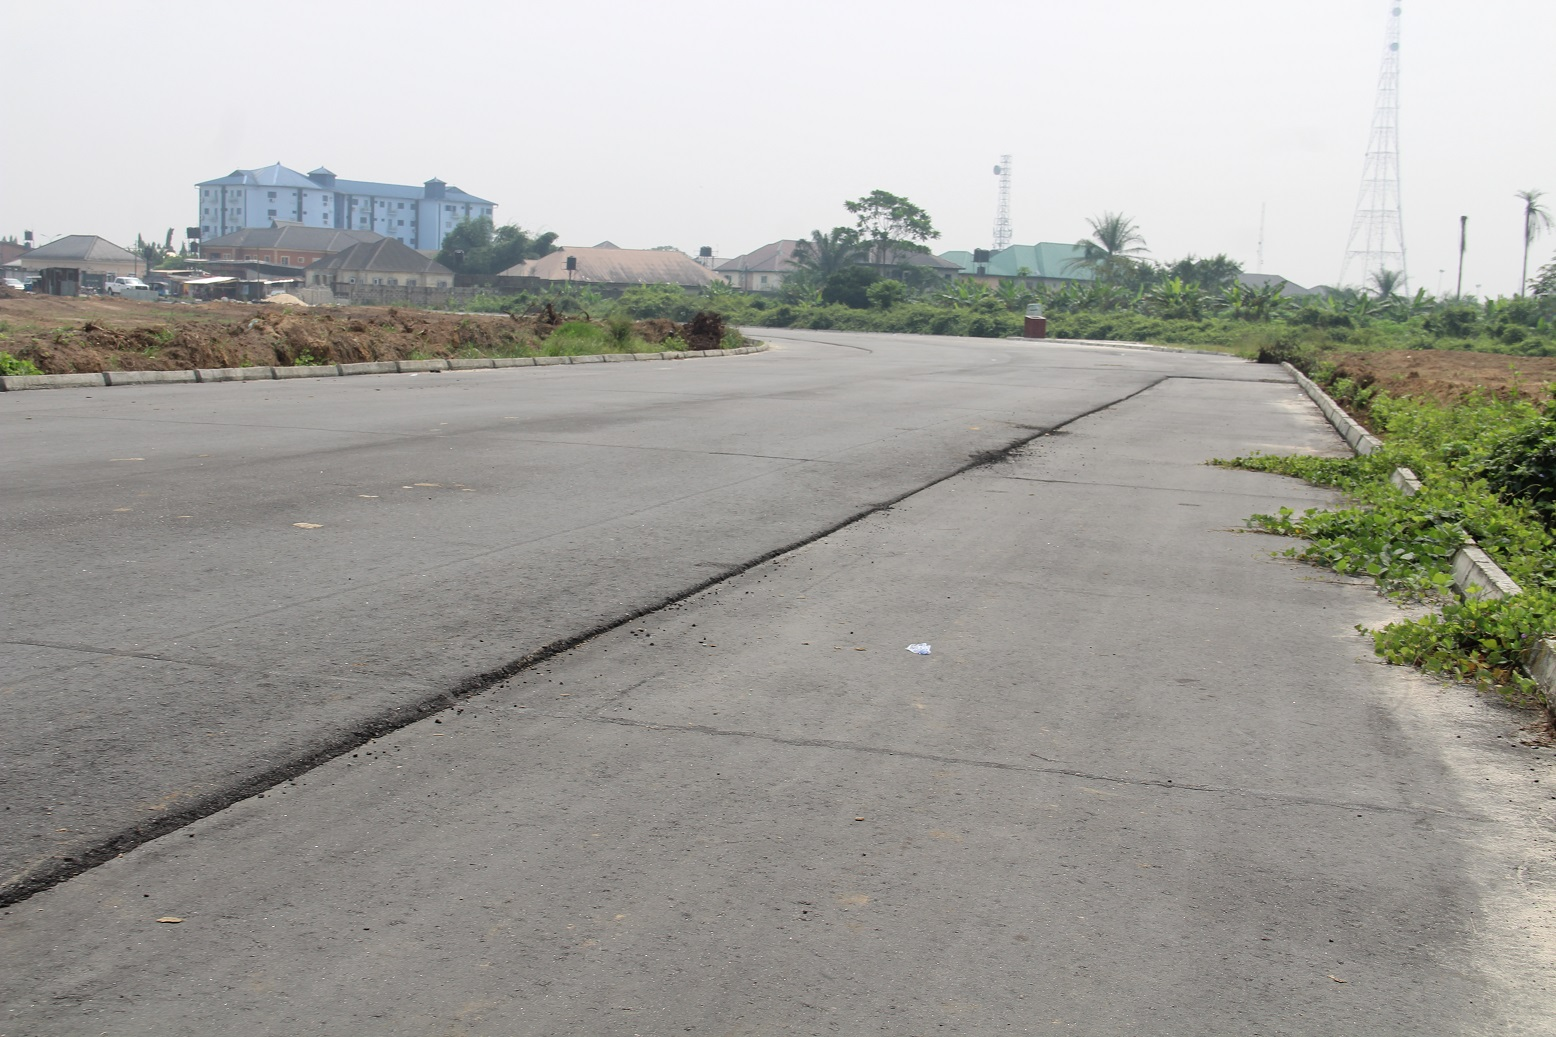 Access road from NPA expressway to Warri Refinery